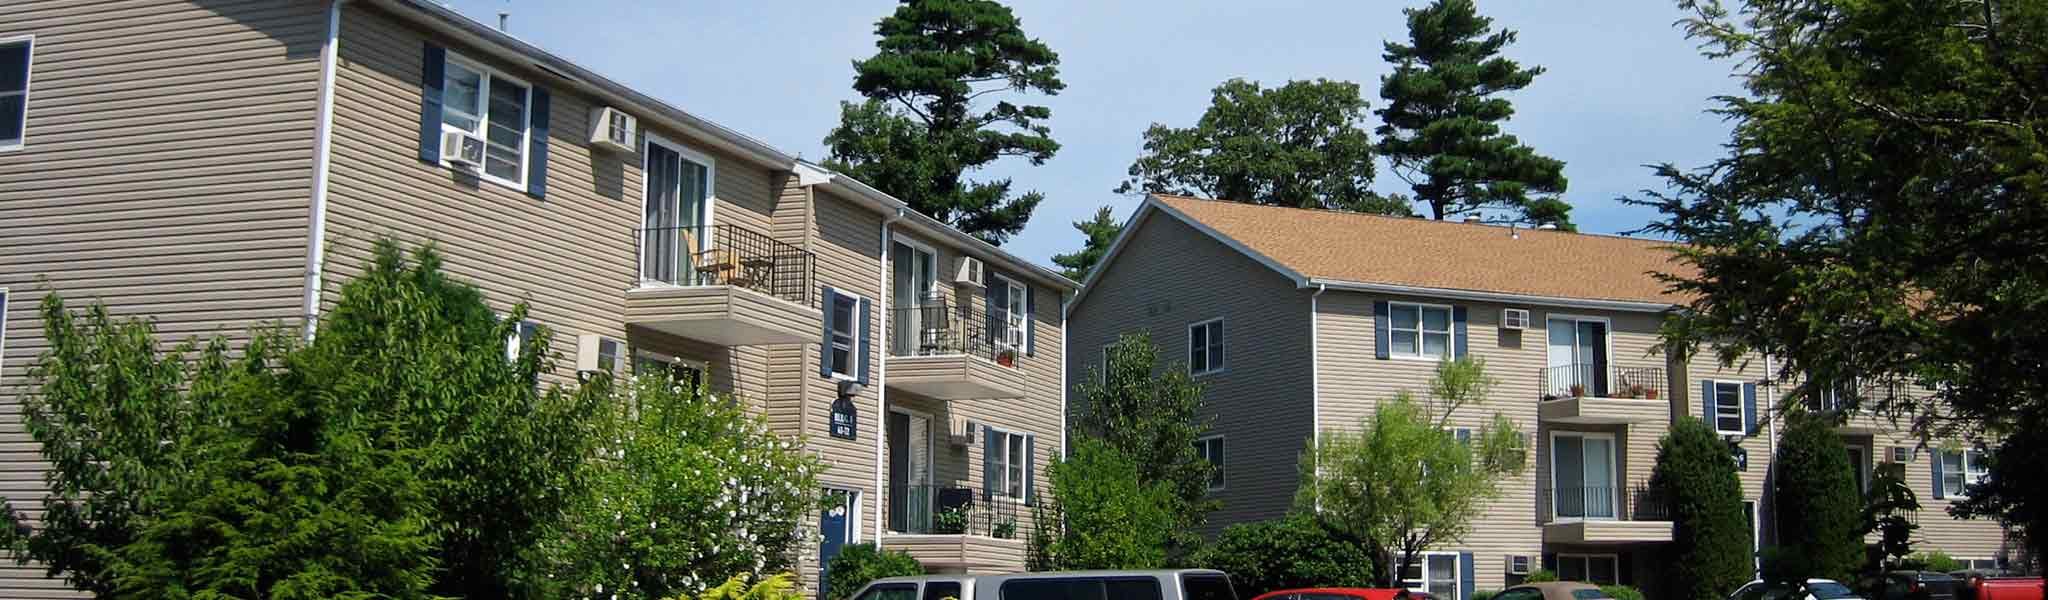 Apartments For Rent In Downtown New Bedford Ma